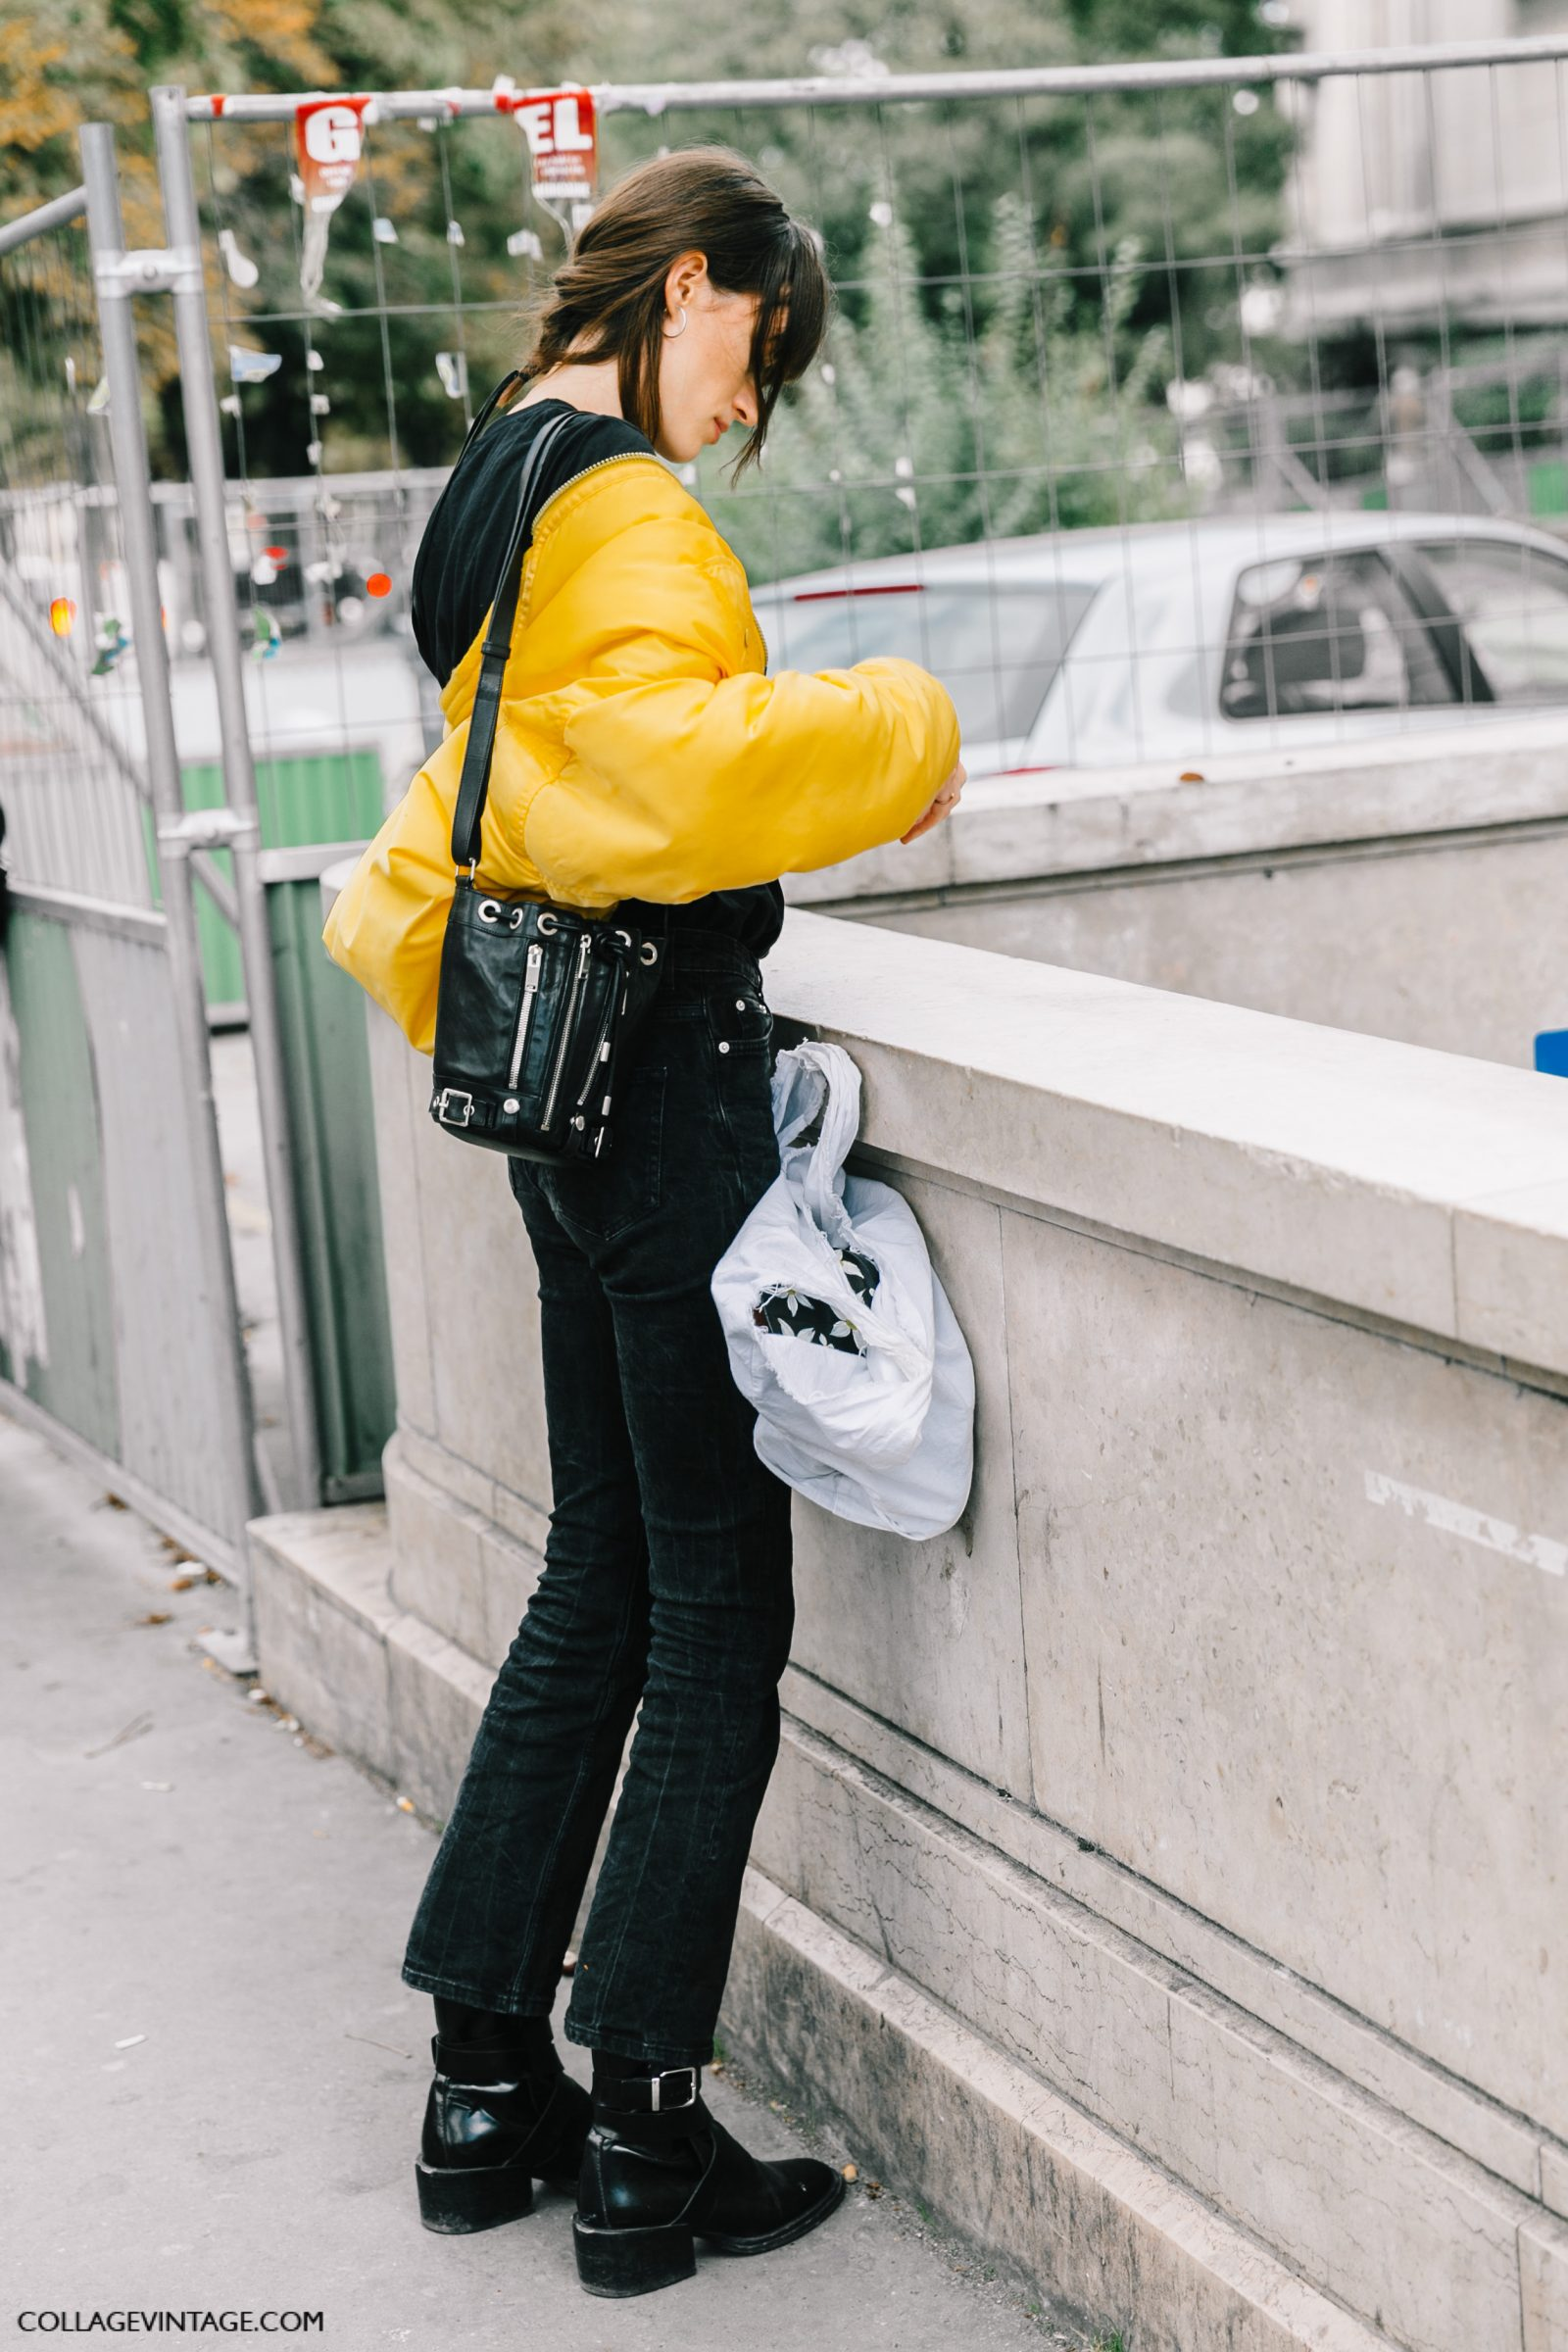 pfw-paris_fashion_week_ss17-street_style-outfits-collage_vintage-chloe-carven-balmain-barbara_bui-142